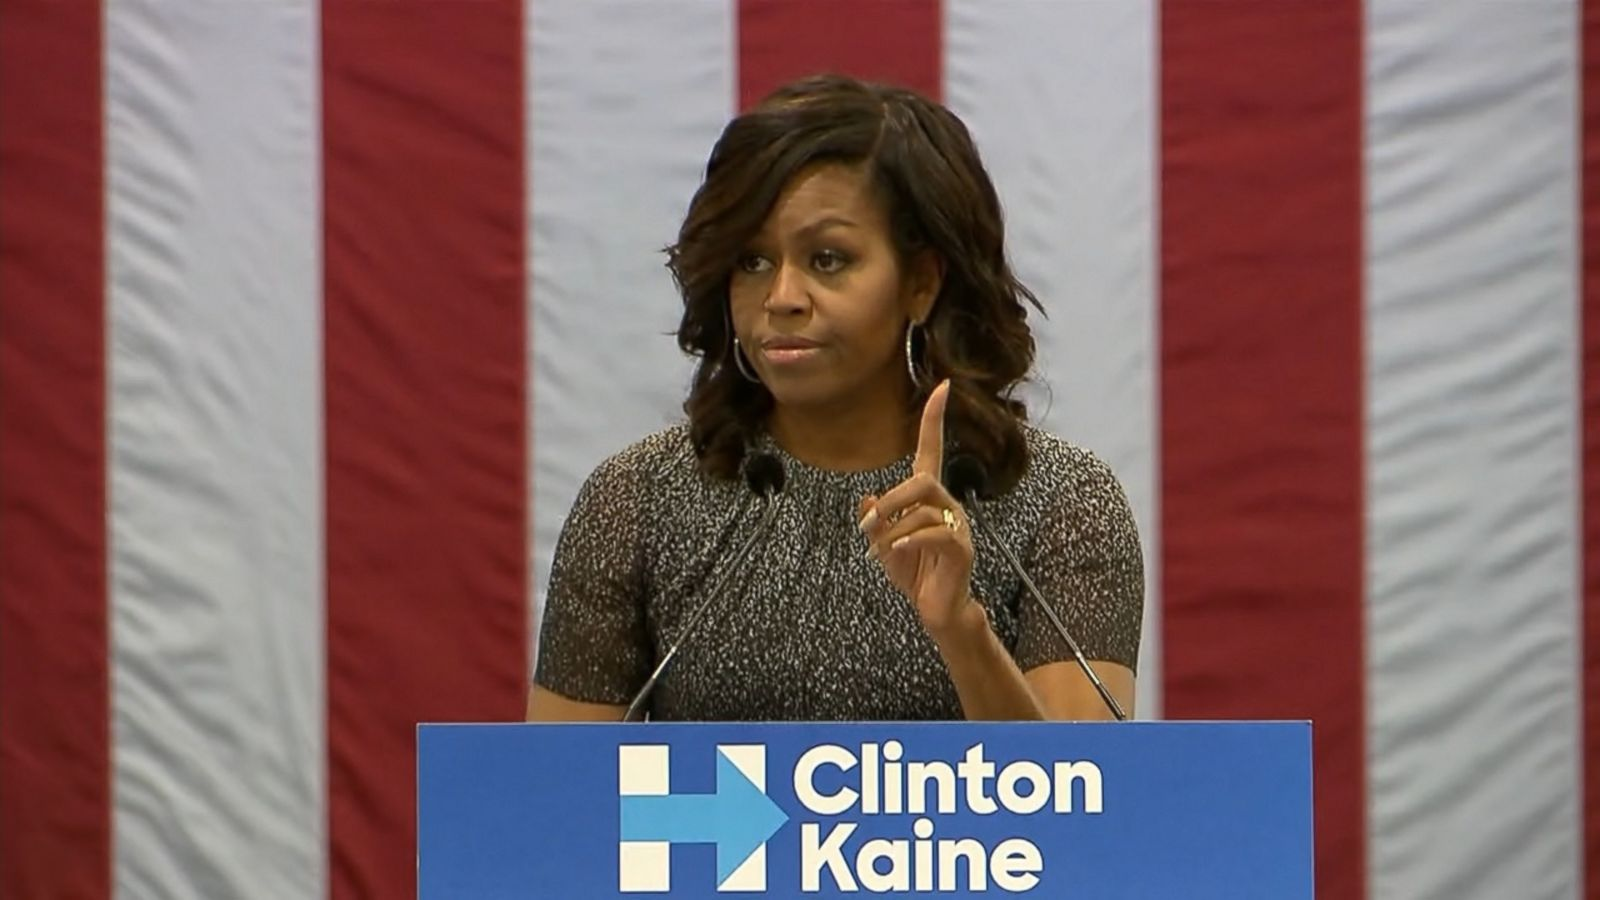 First Lady Michelle Obama slammed Donald Trump today in Arizona, a state that has not voted for a Democrat since 1996 but polling shows is in play for Hillary Clinton.